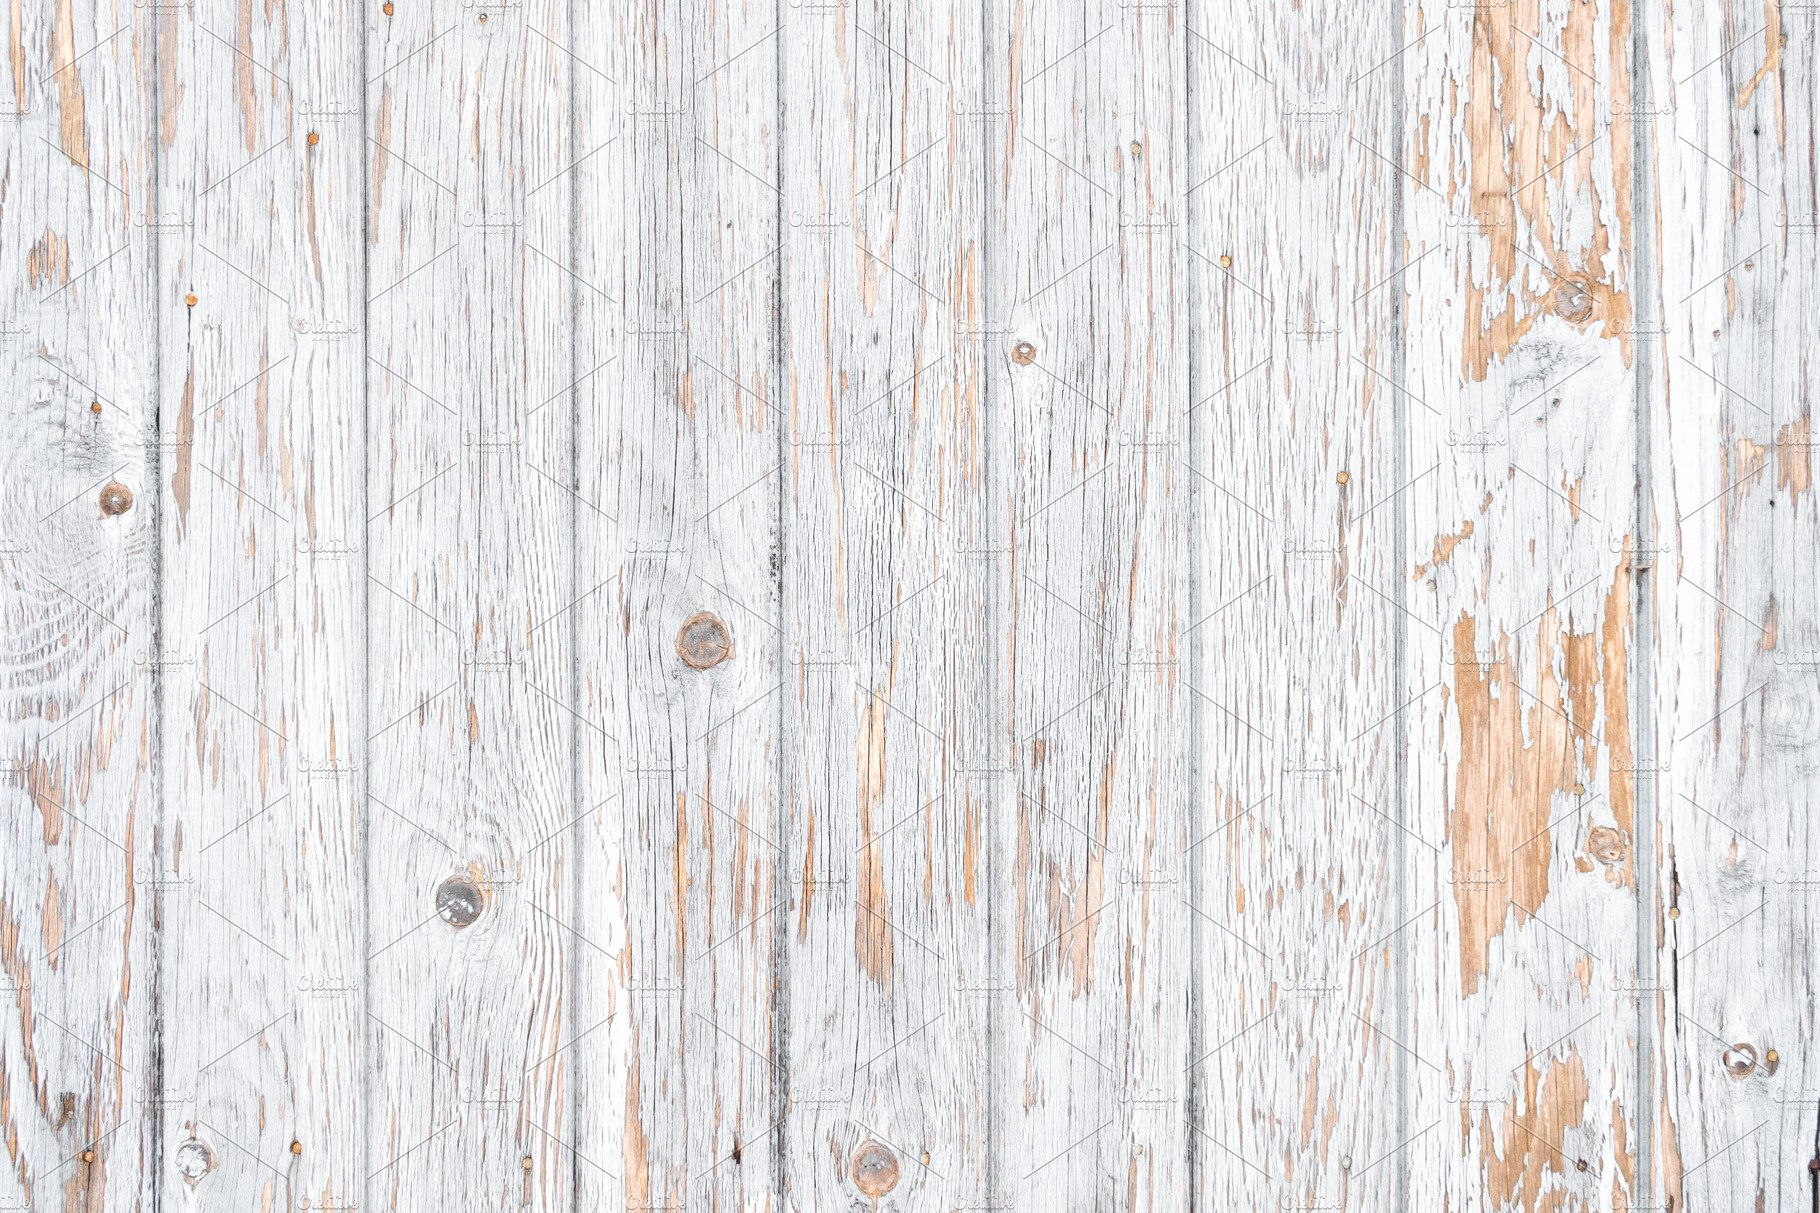 White Rustic Wooden Background ~ Abstract Photos ...